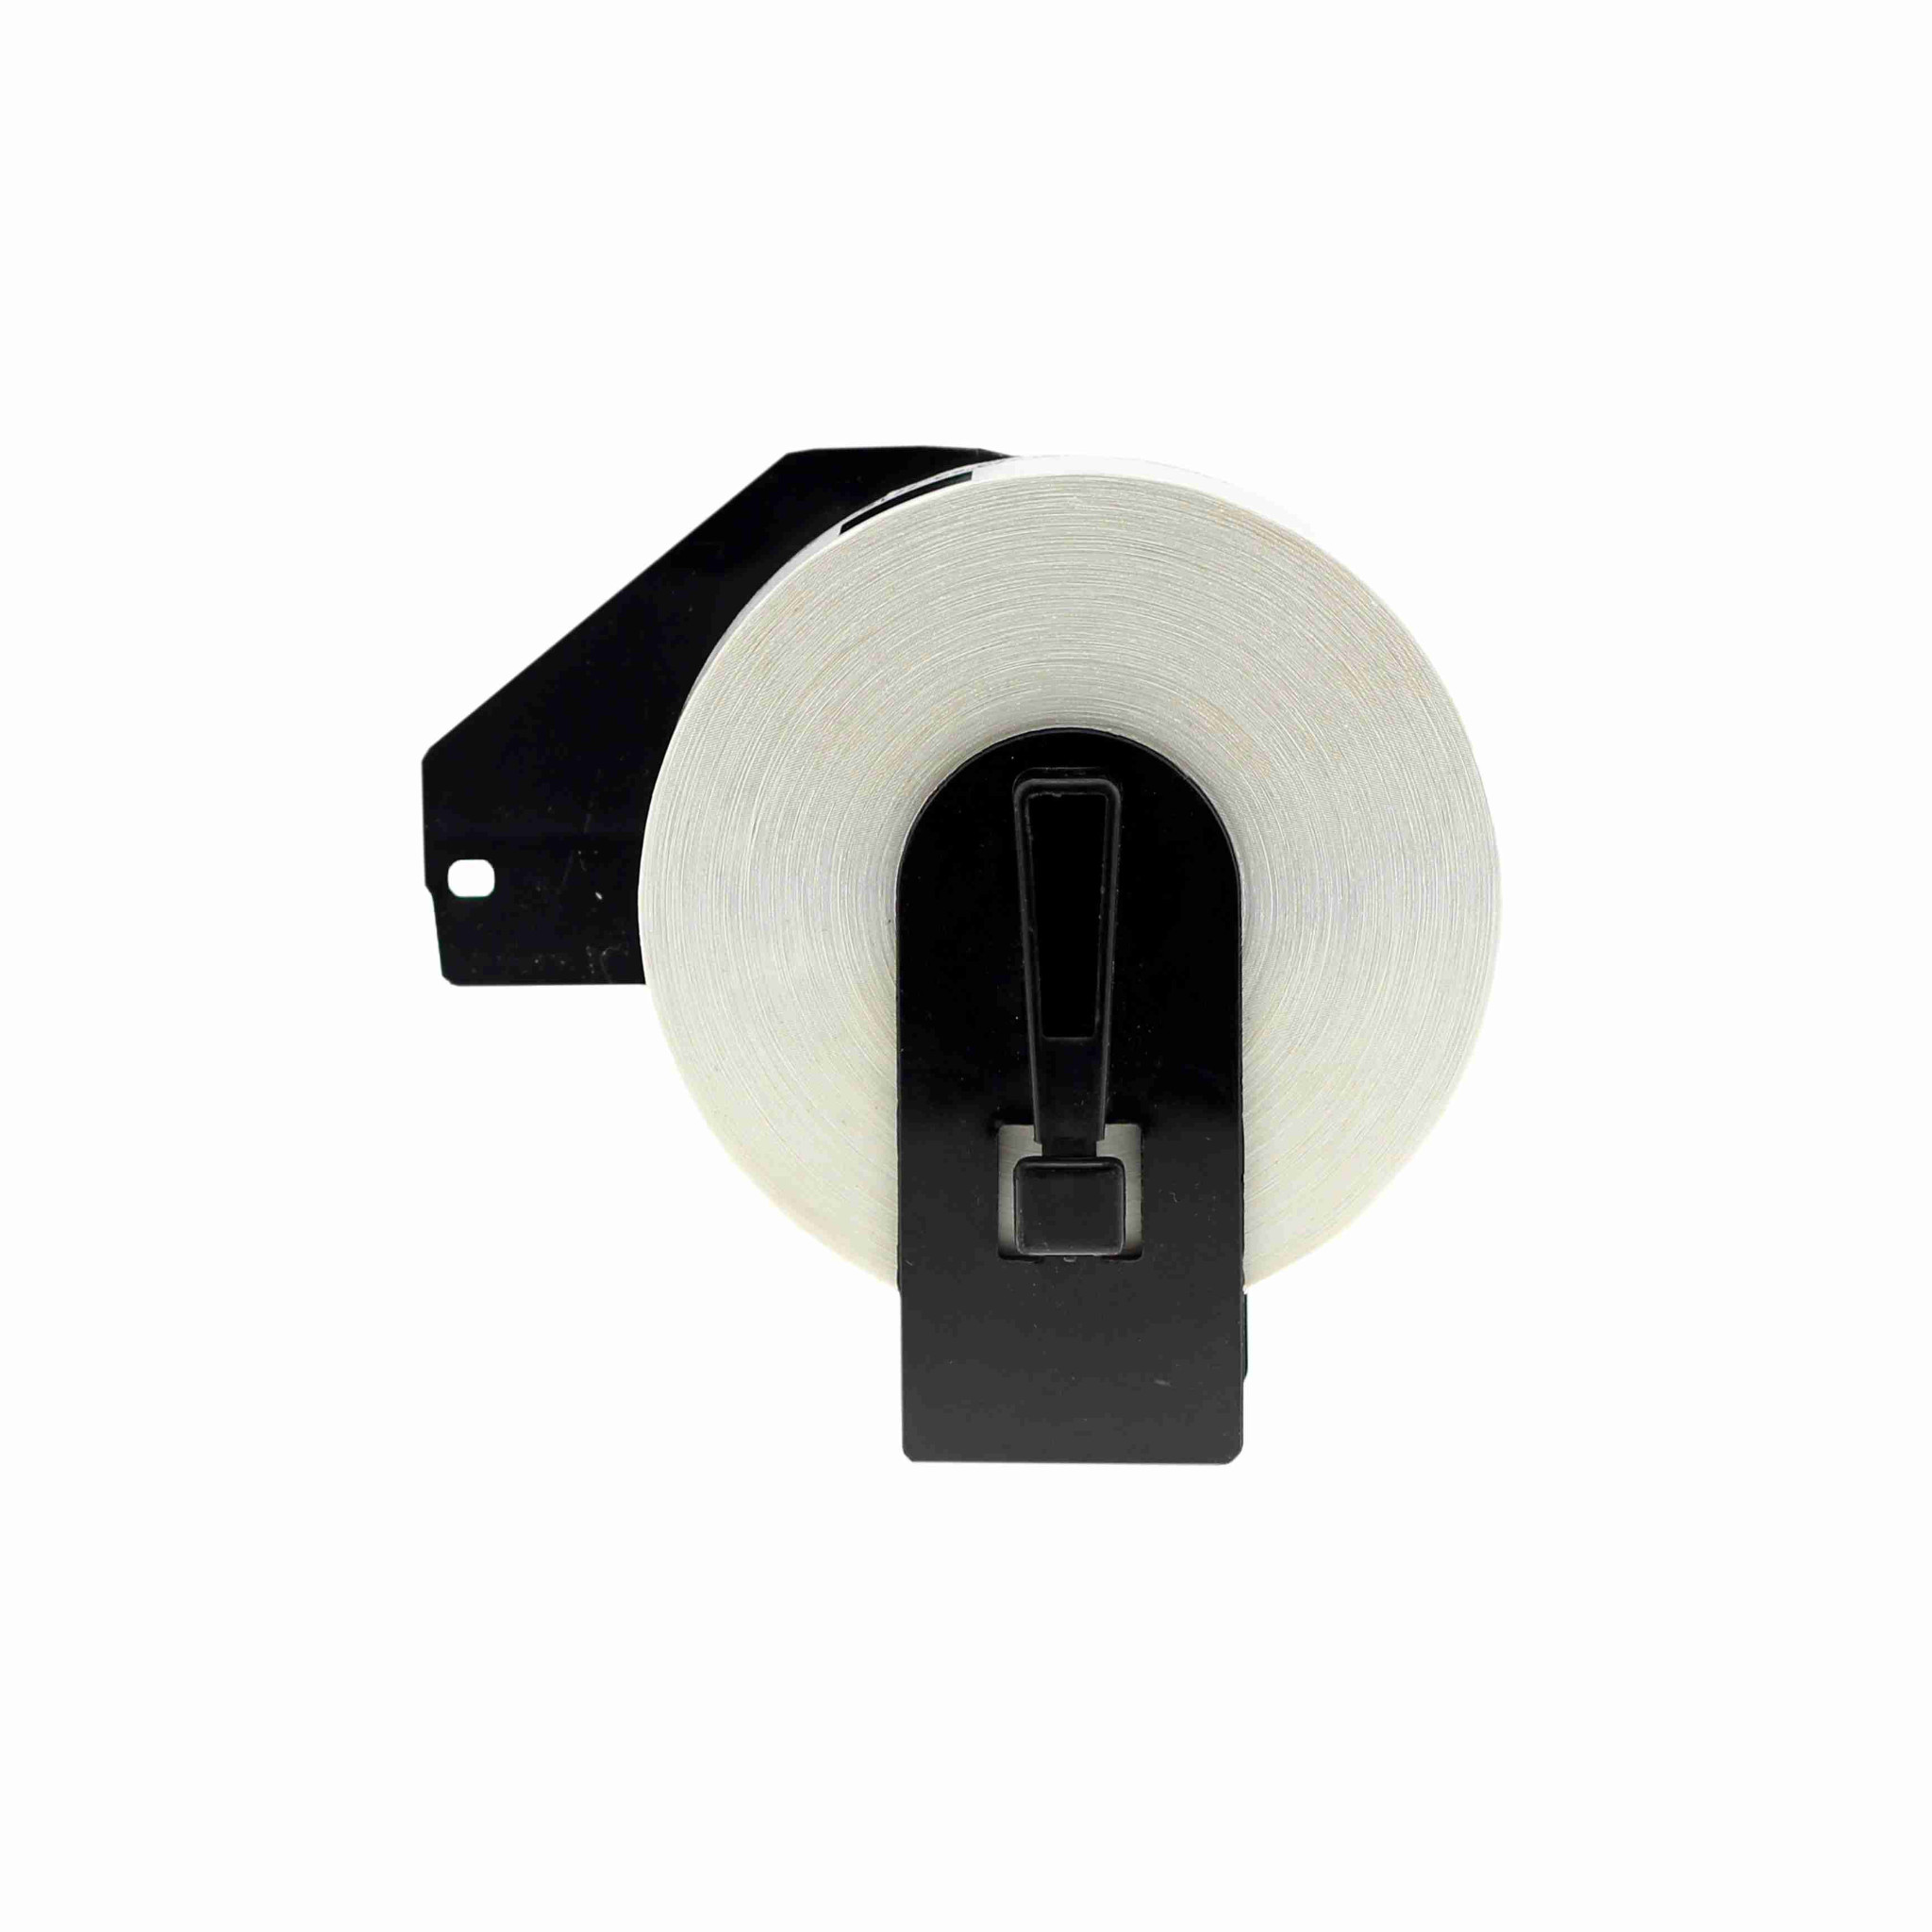 DK-11204 5 x Compatible Brother White Address Labels 17mm x 54mm